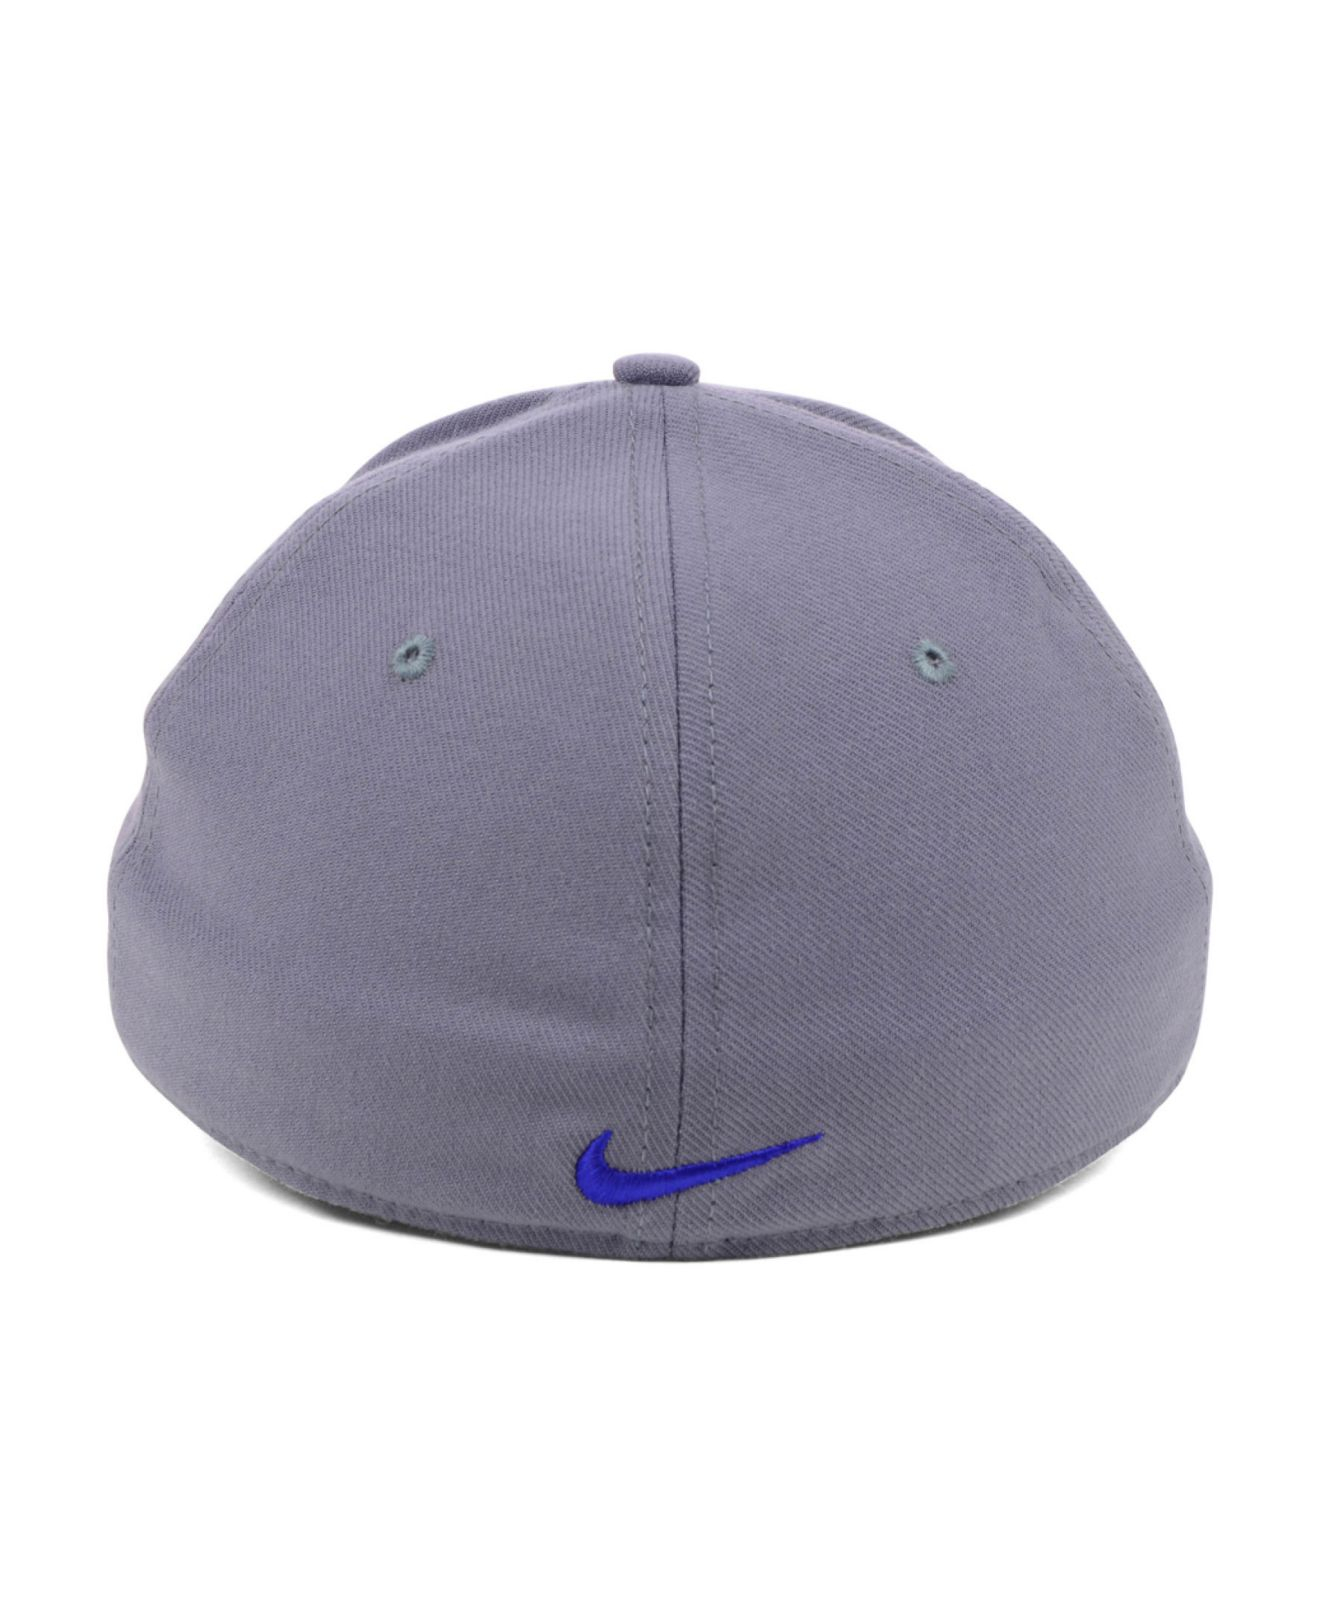 c362fa36 ... uk lyst nike chicago cubs drifit swooshflex cap in gray for men 4f3f2  019e5